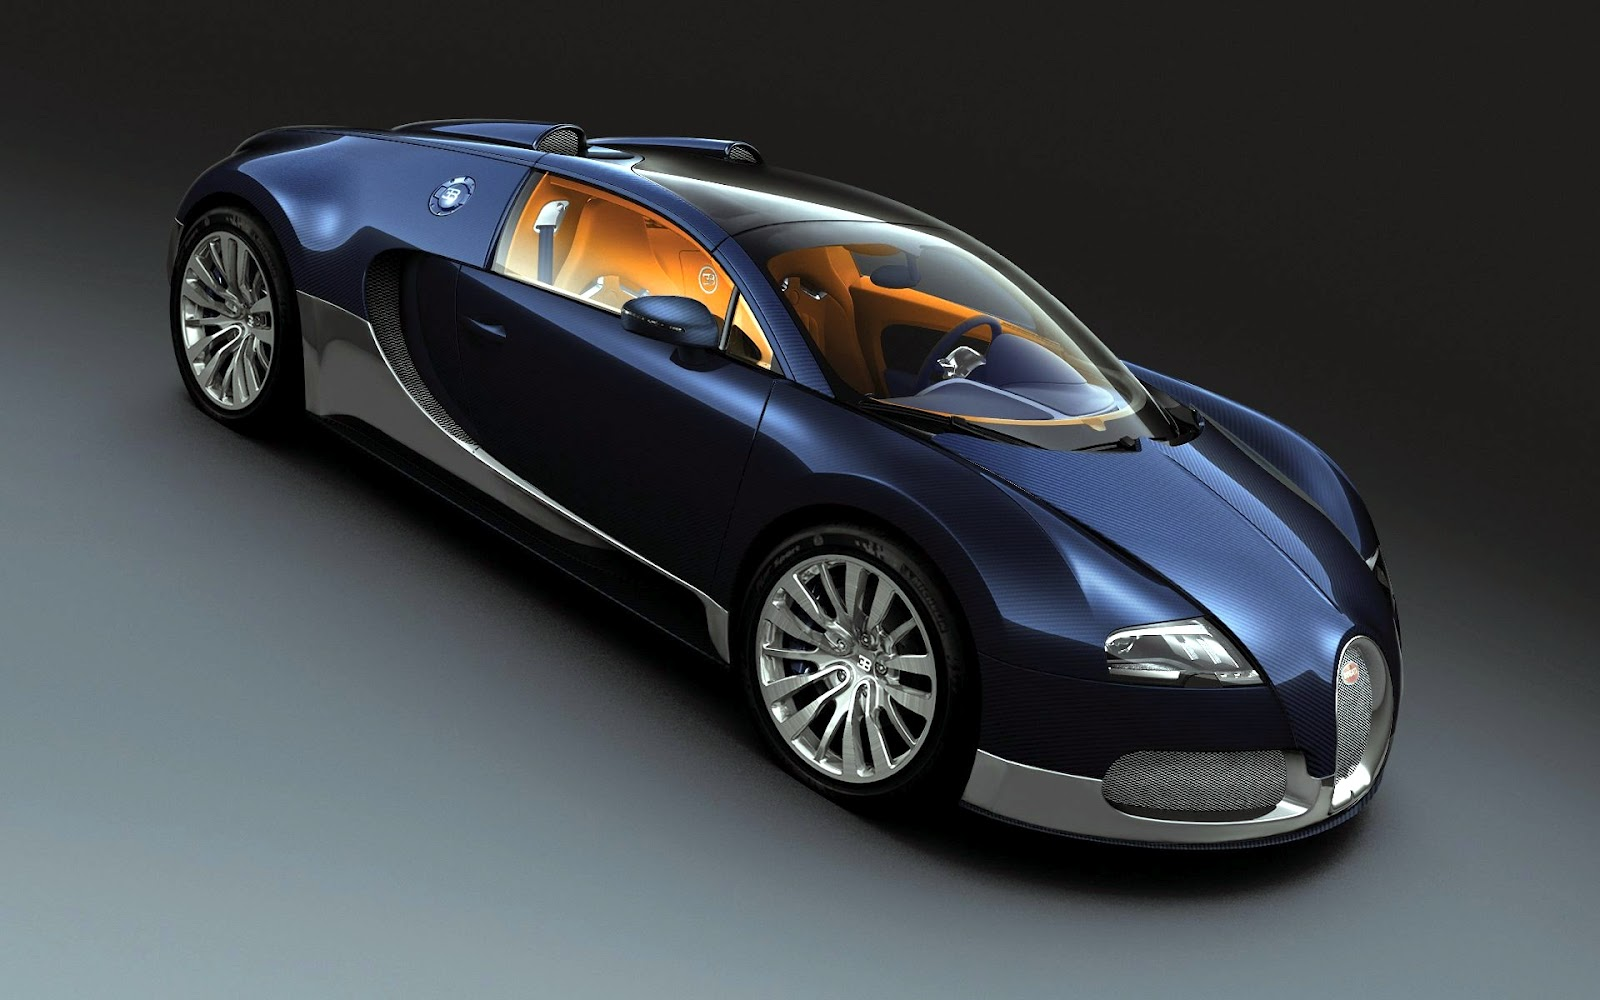 hd classic wallpapers bugatti veyron wallpaper. Black Bedroom Furniture Sets. Home Design Ideas